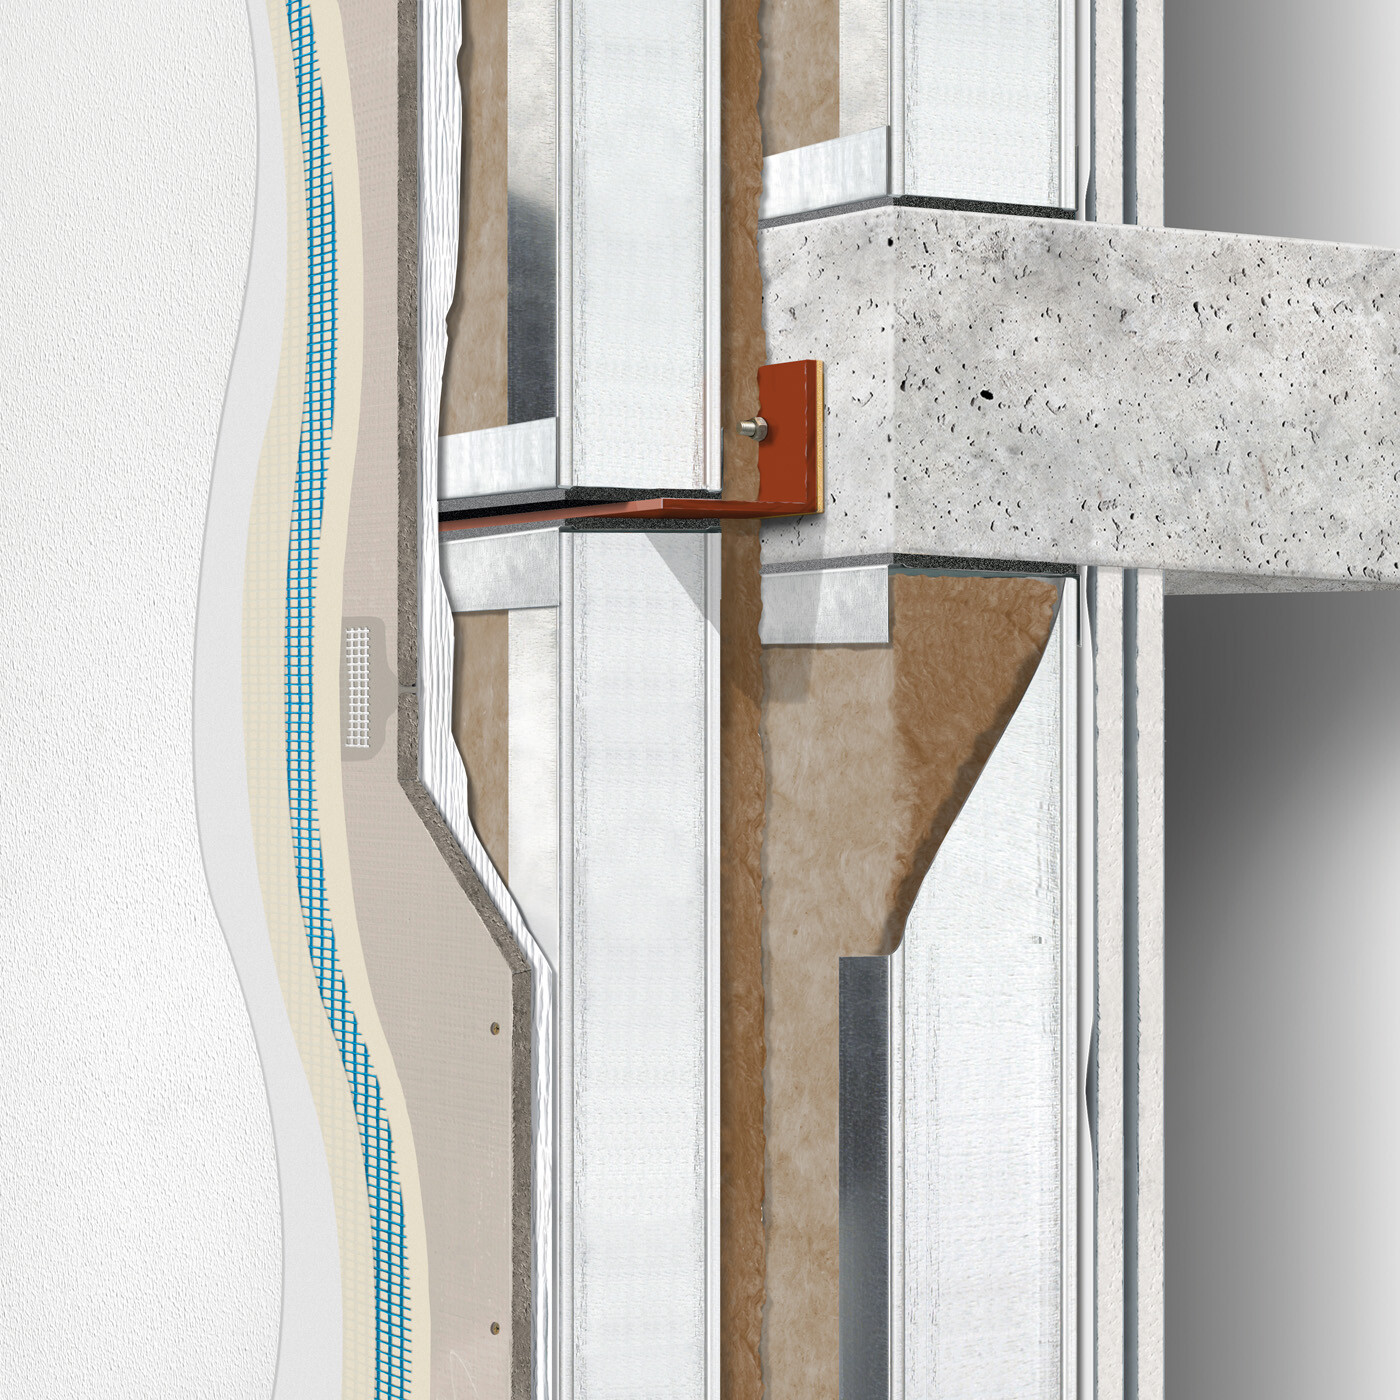 Exterior wall construction directly-applied / water-managed in front of floors: double stud